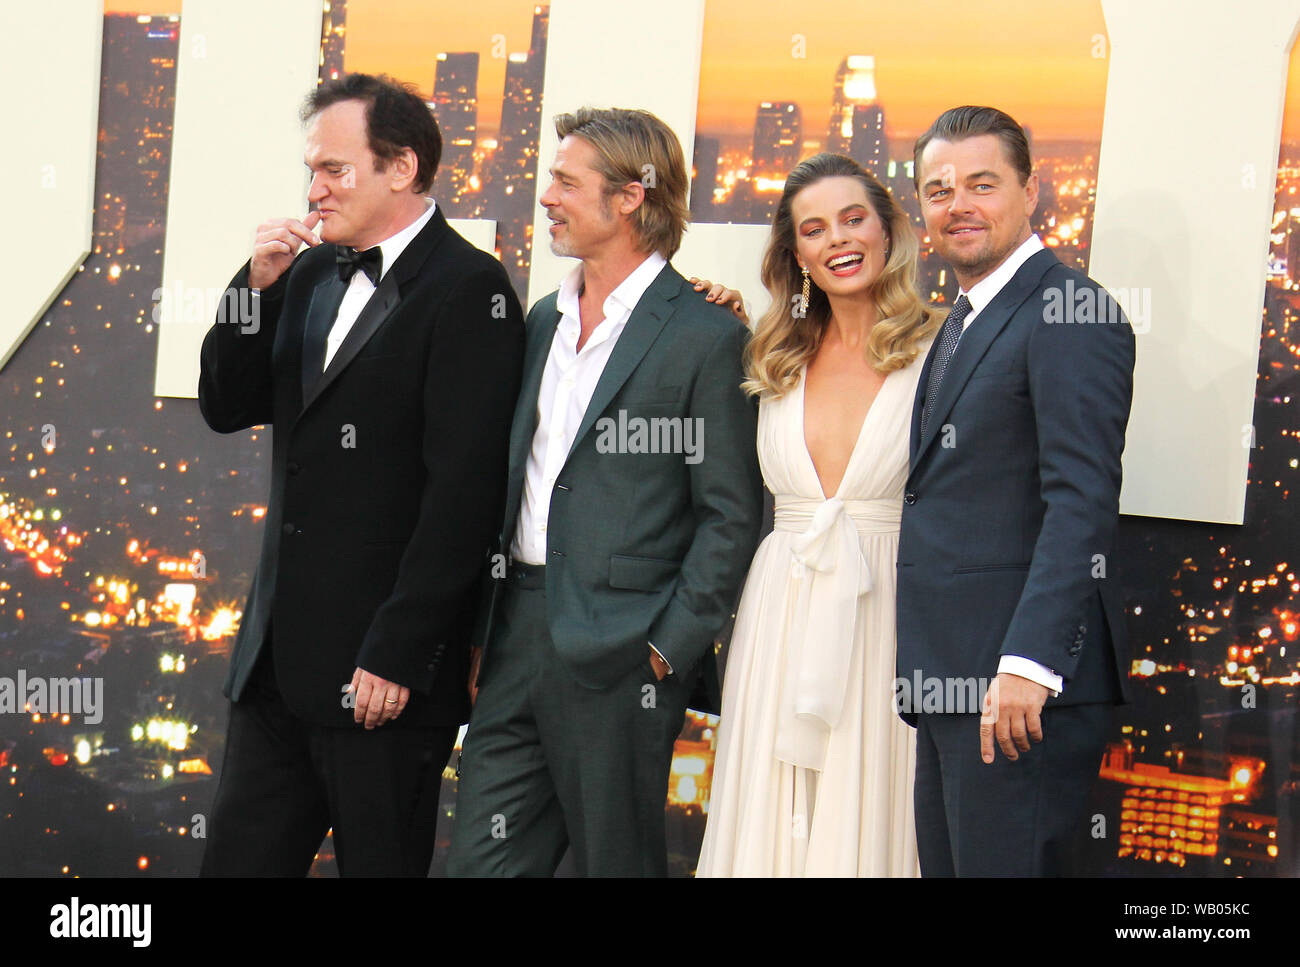 Once Upon A Time At Christmas 2019.Los Angeles Premiere Of Once Upon A Time In Hollywood Held